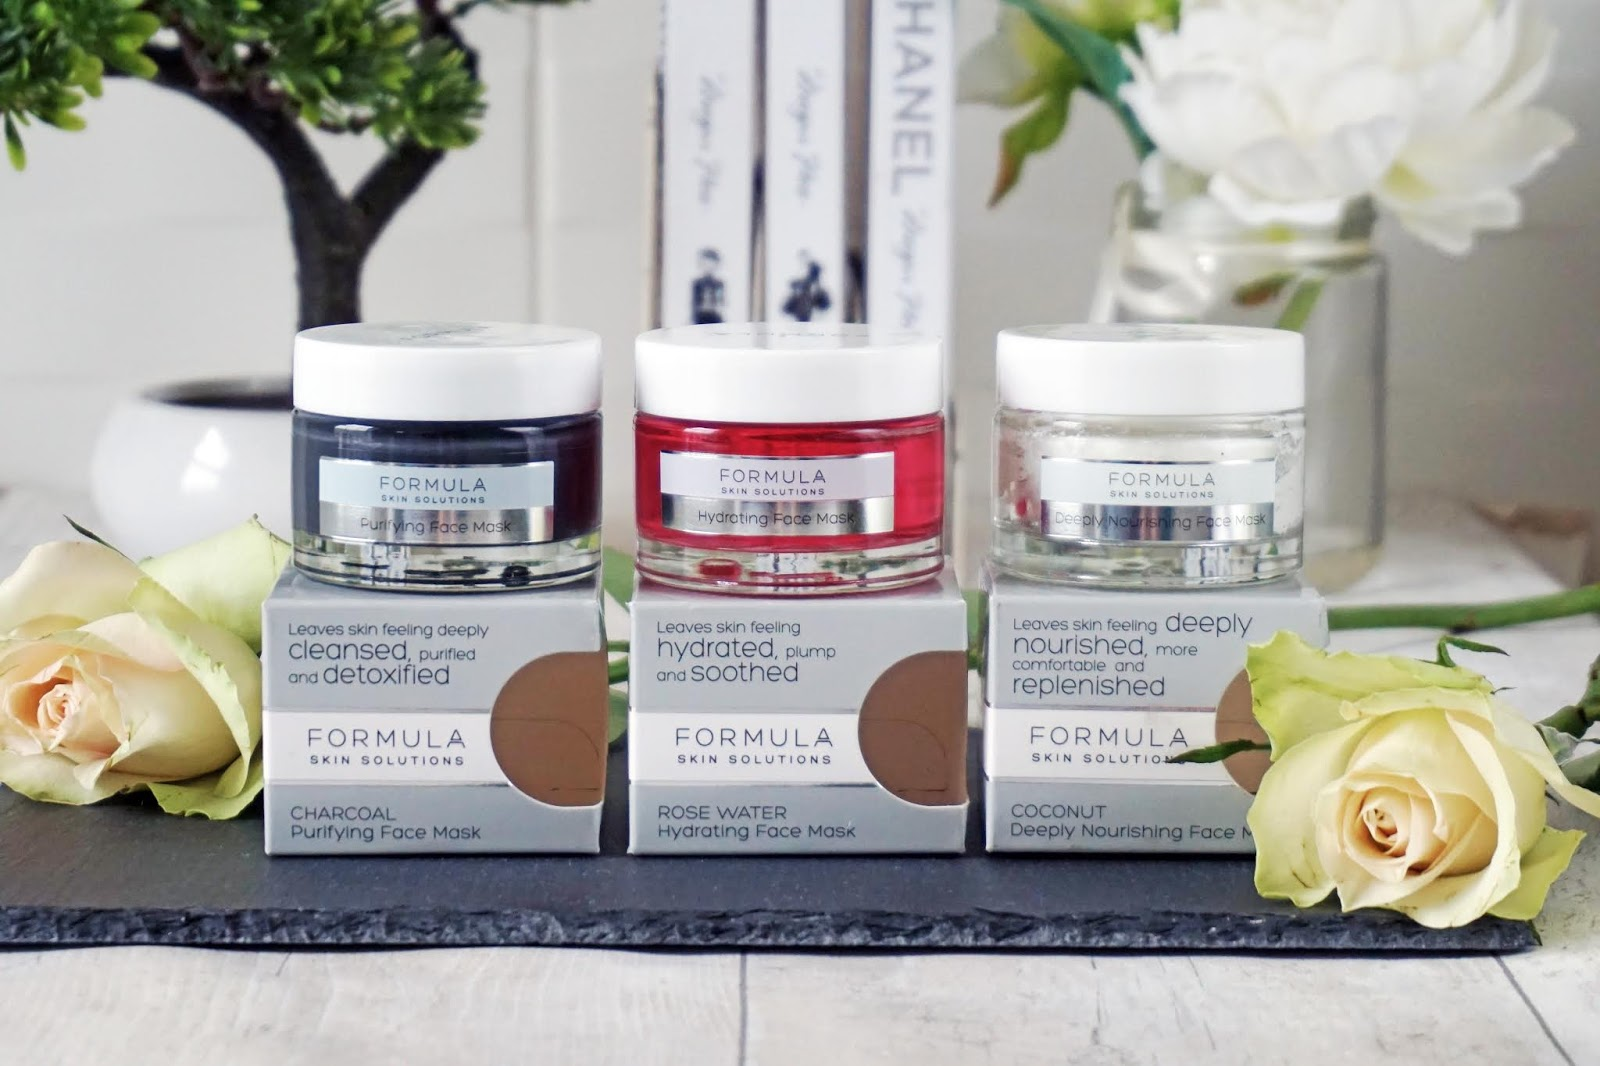 M&S Formula Skin Solutions face masks